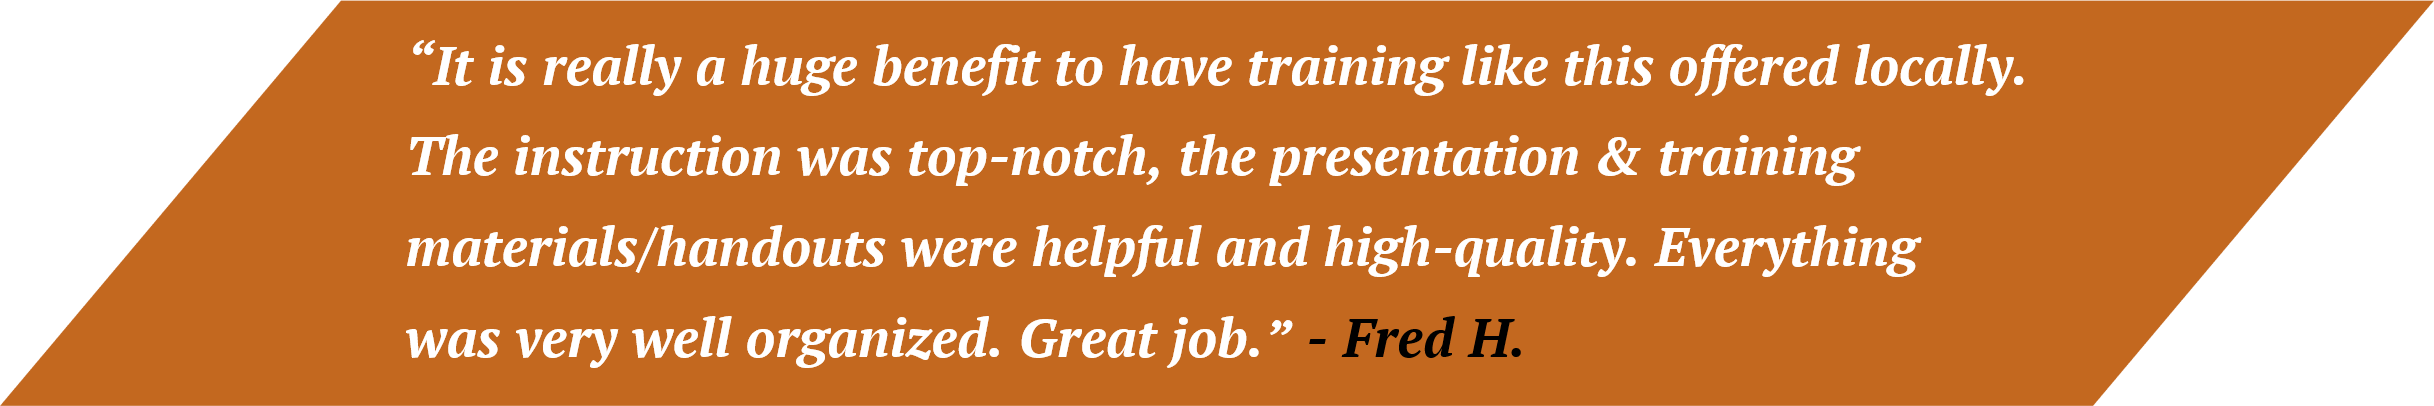 Fred Customer Quote